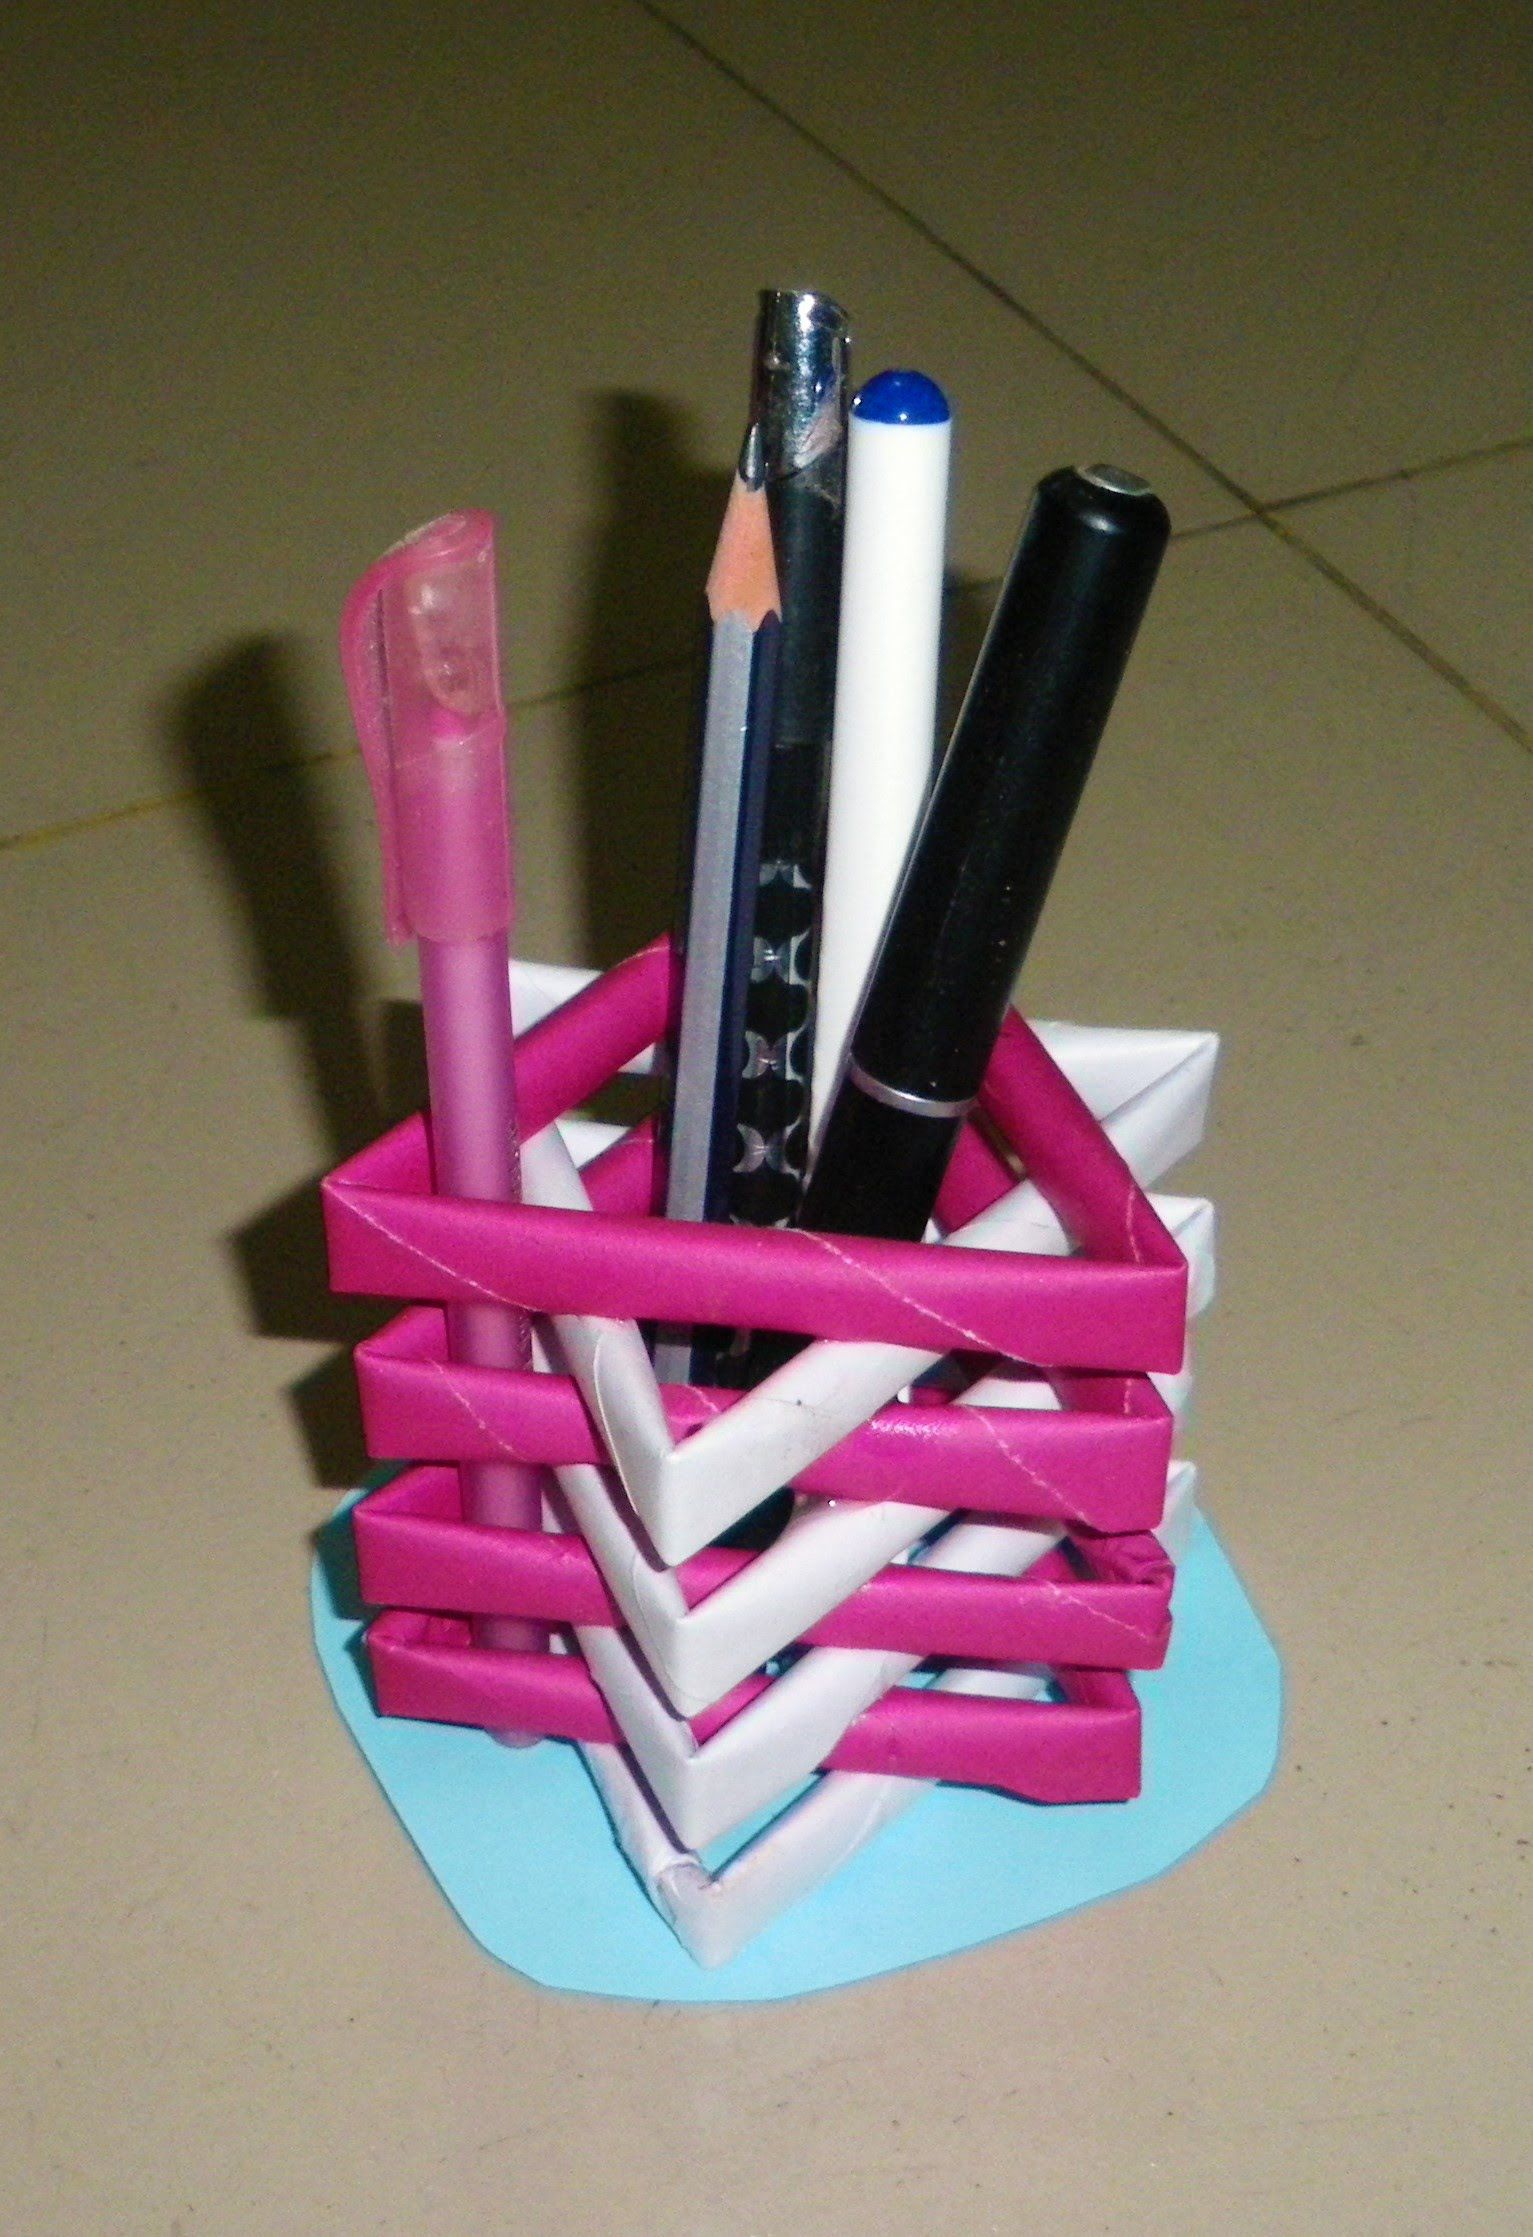 How to make a pen stand from waste material diy paper for Anything made by waste material